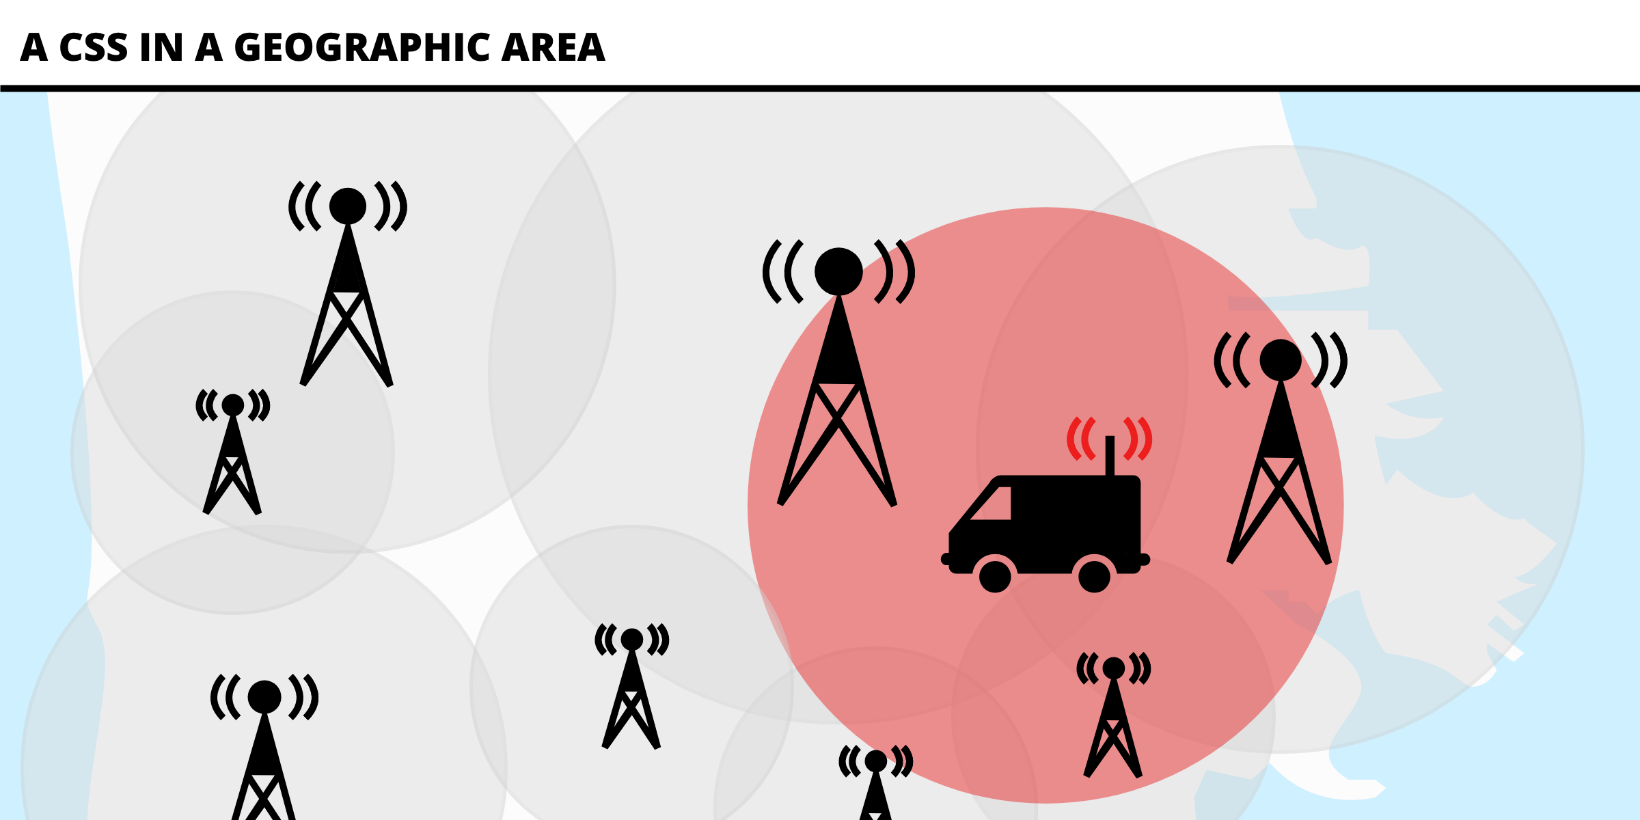 Cell towers are shown on a map, each with gray circles radiating out from them. A CSS (which is depicted here as a truck with a signal) emanates a red circle overlapping with the other cell tower circles.